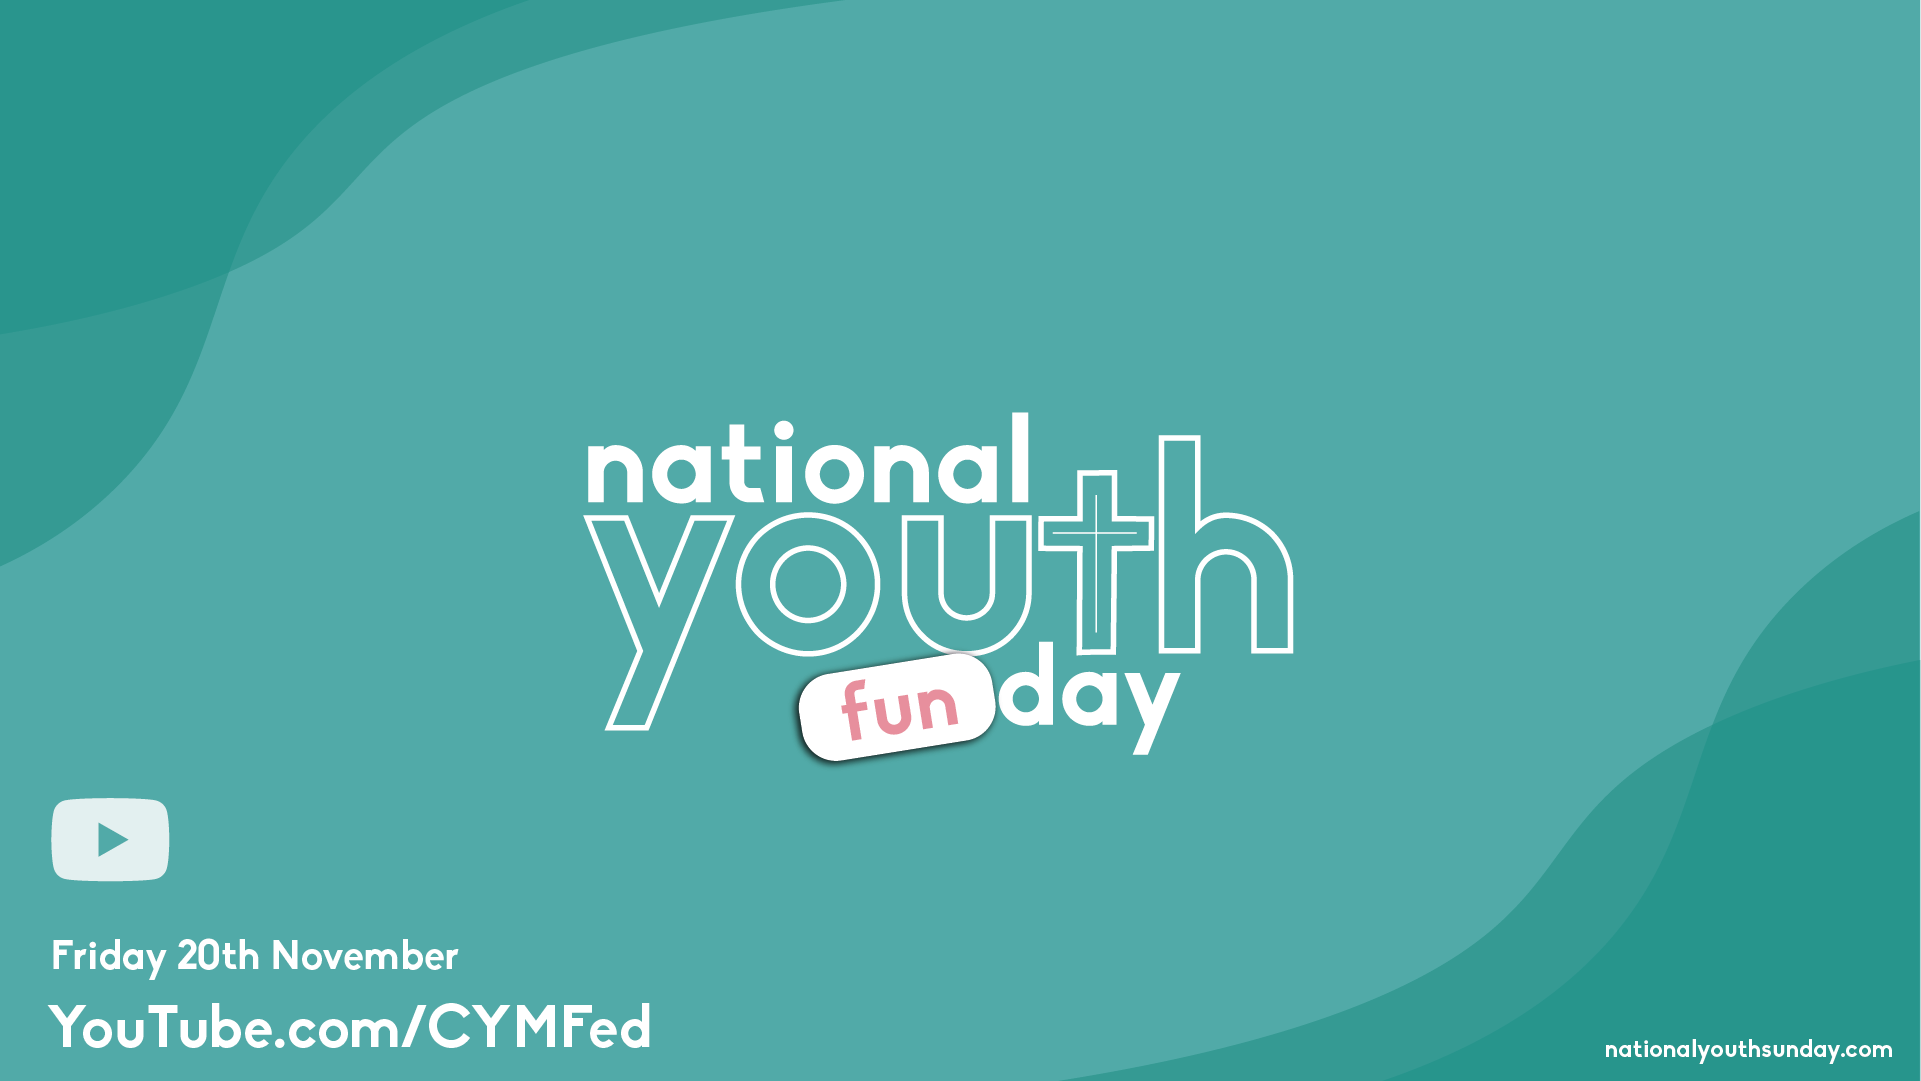 Schools Invited To Come 'Together' For First National Youth Funday